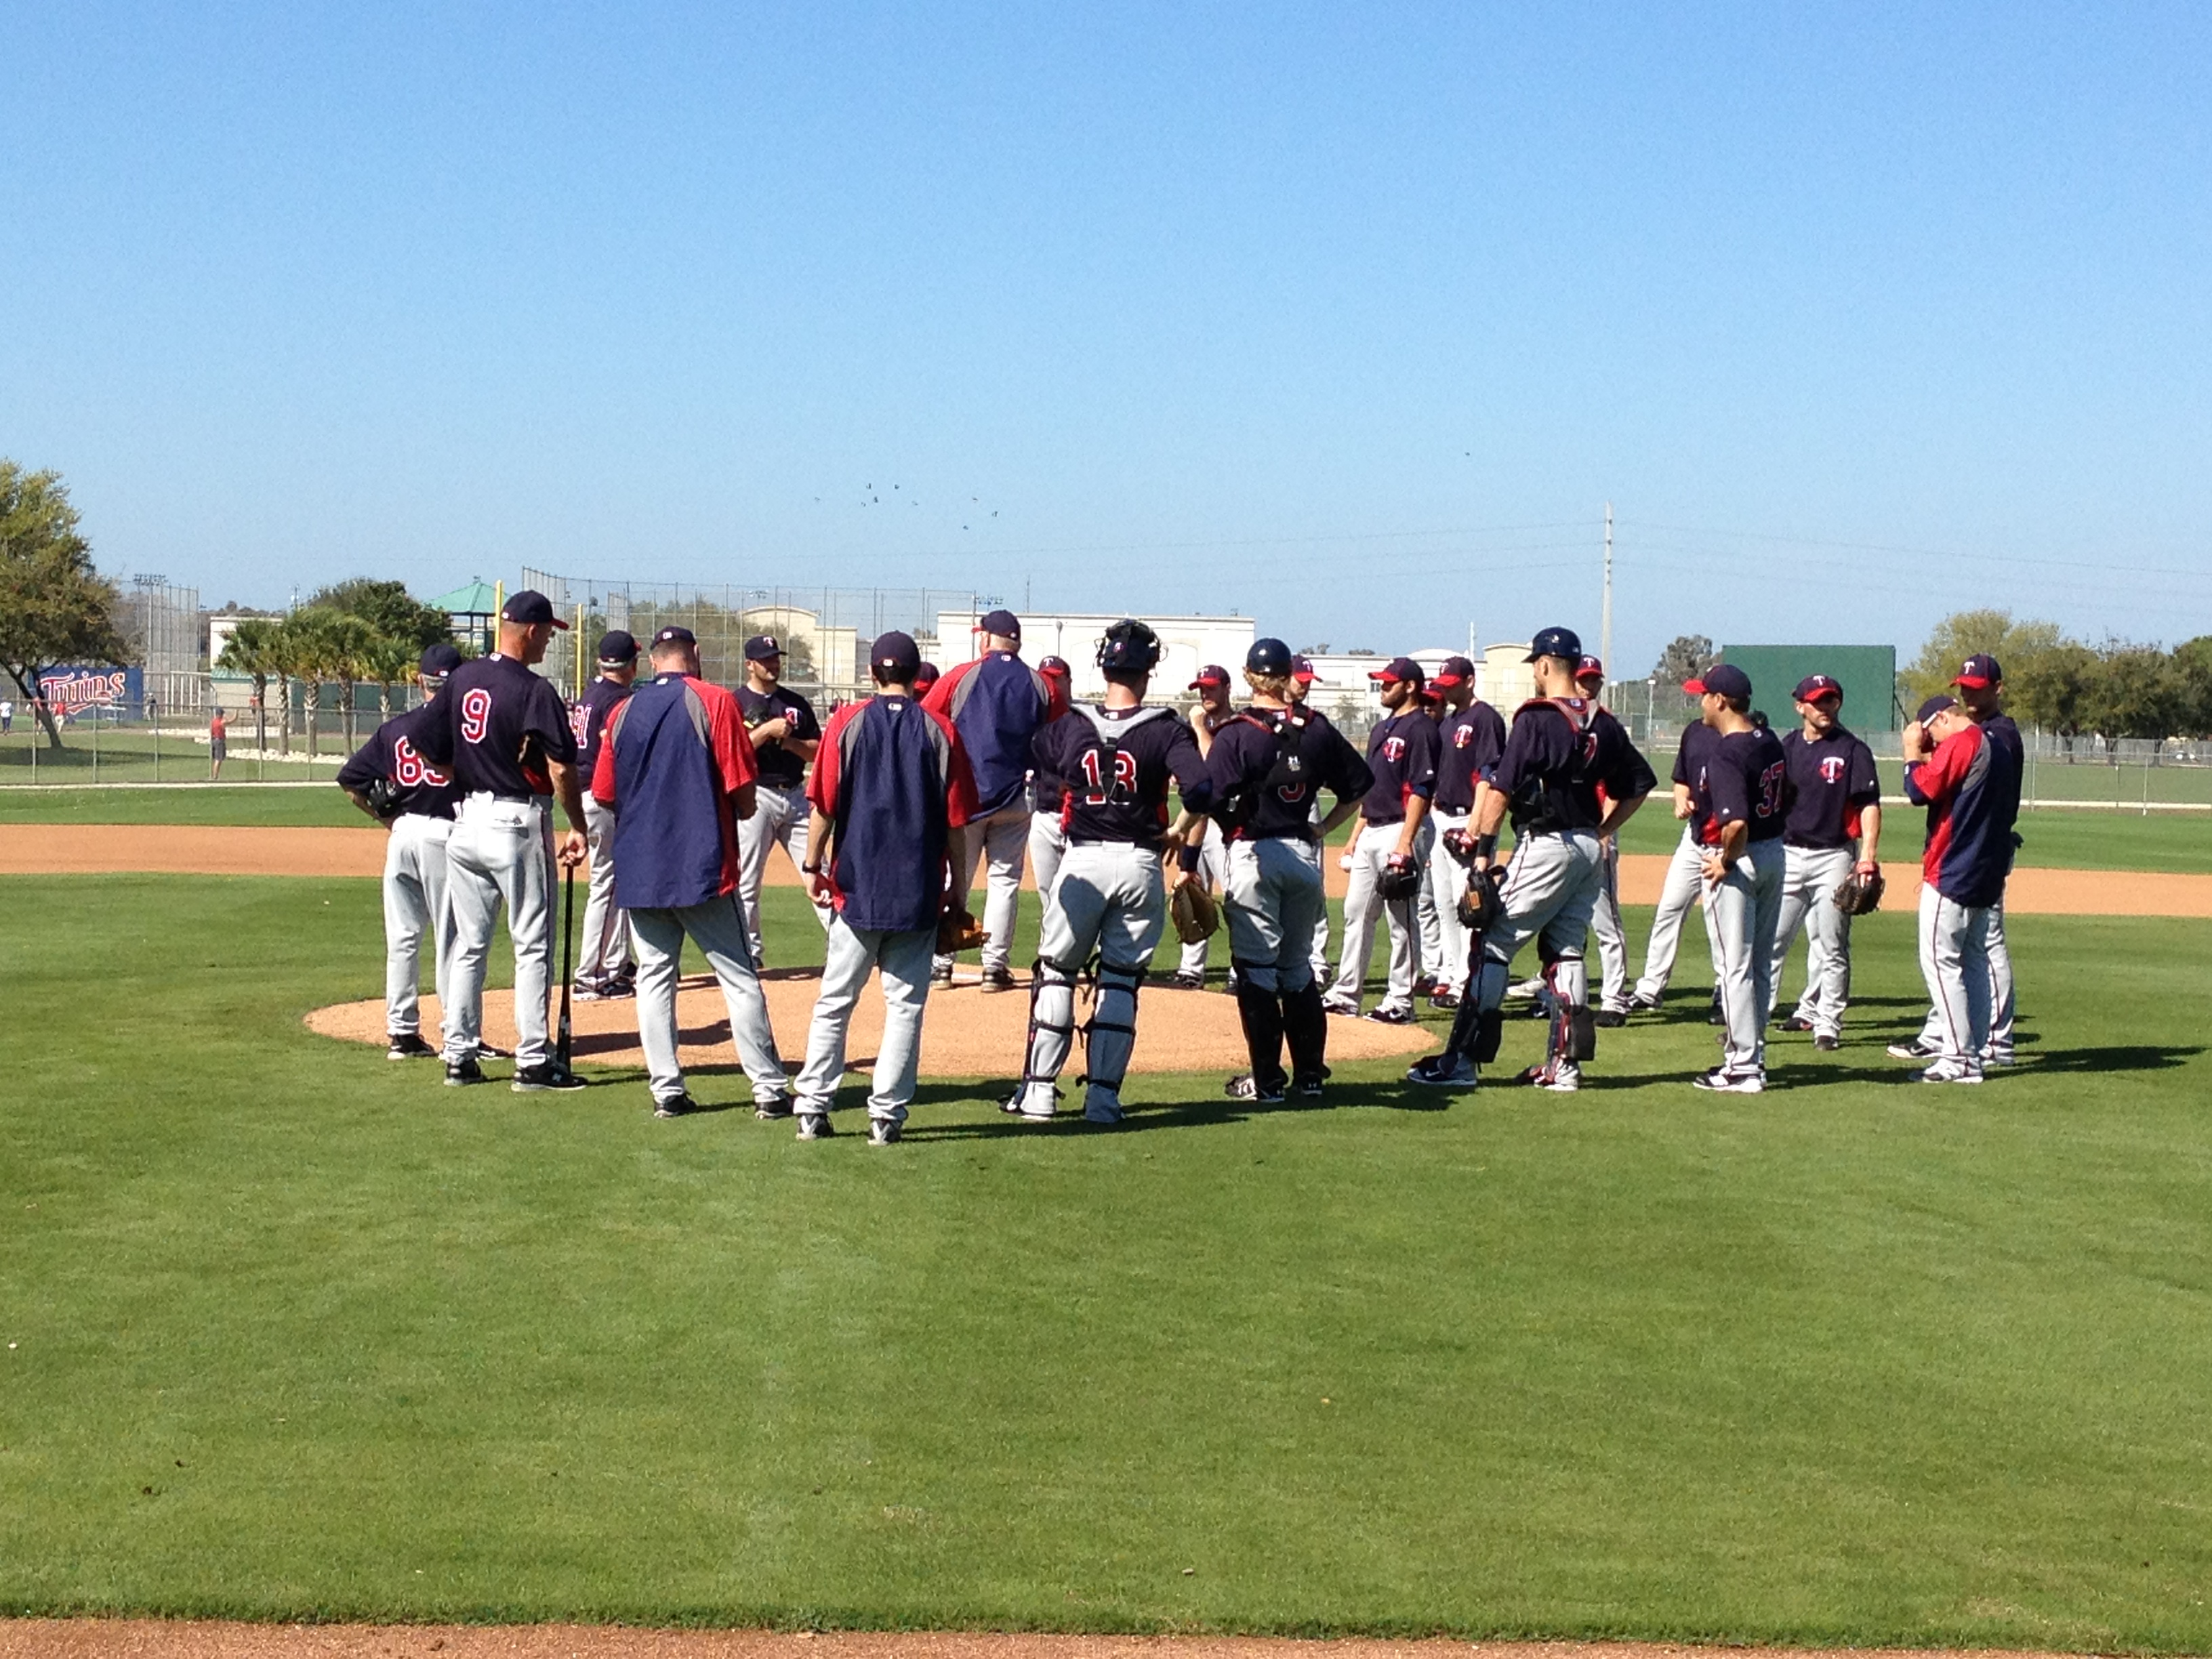 Gardenhire addressing pitchers and catchers